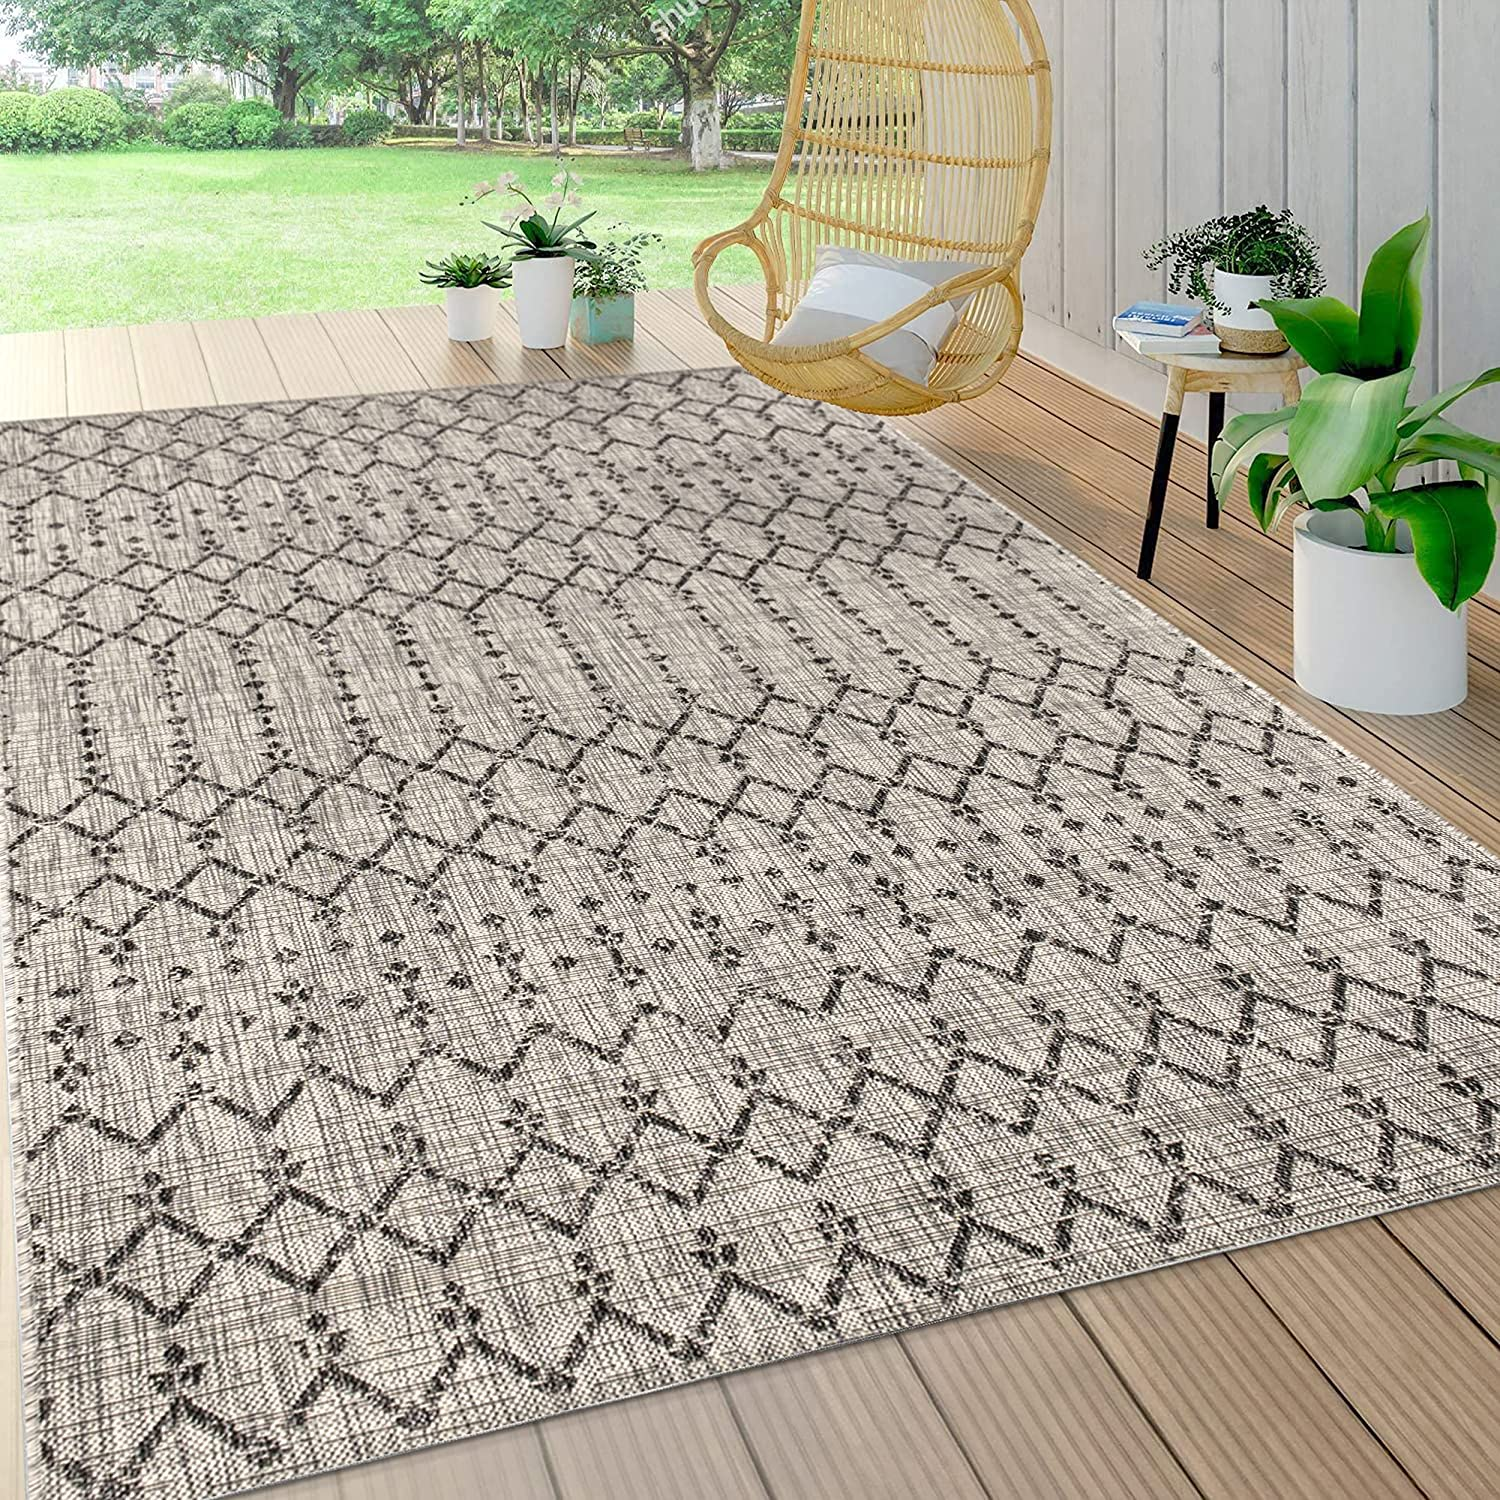 JONATHAN Y Ourika Moroccan Geometric Weave マート Textured 業界No.1 Indoor Outdo